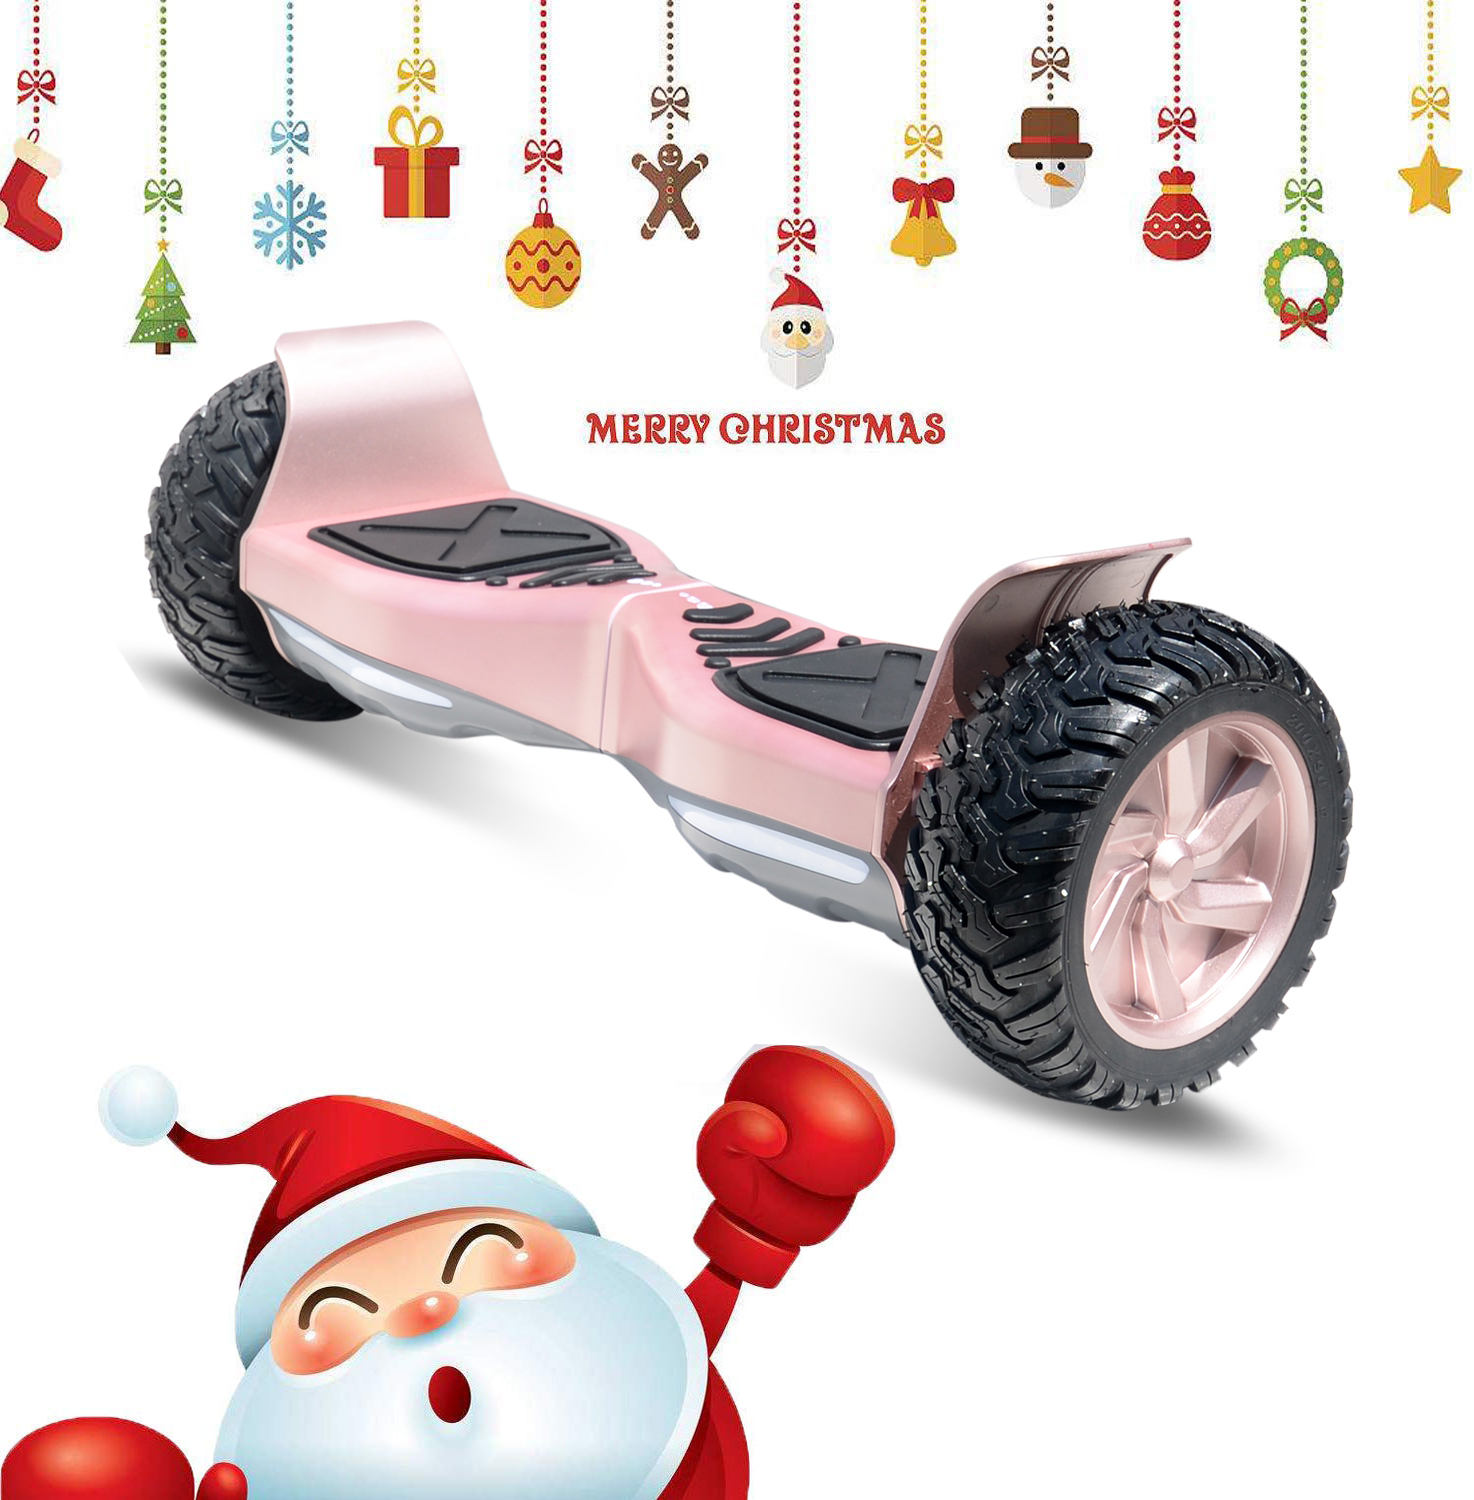 "Top Hoverboards for Gift Choices - 5 Best 8.5"" Hoverboards"